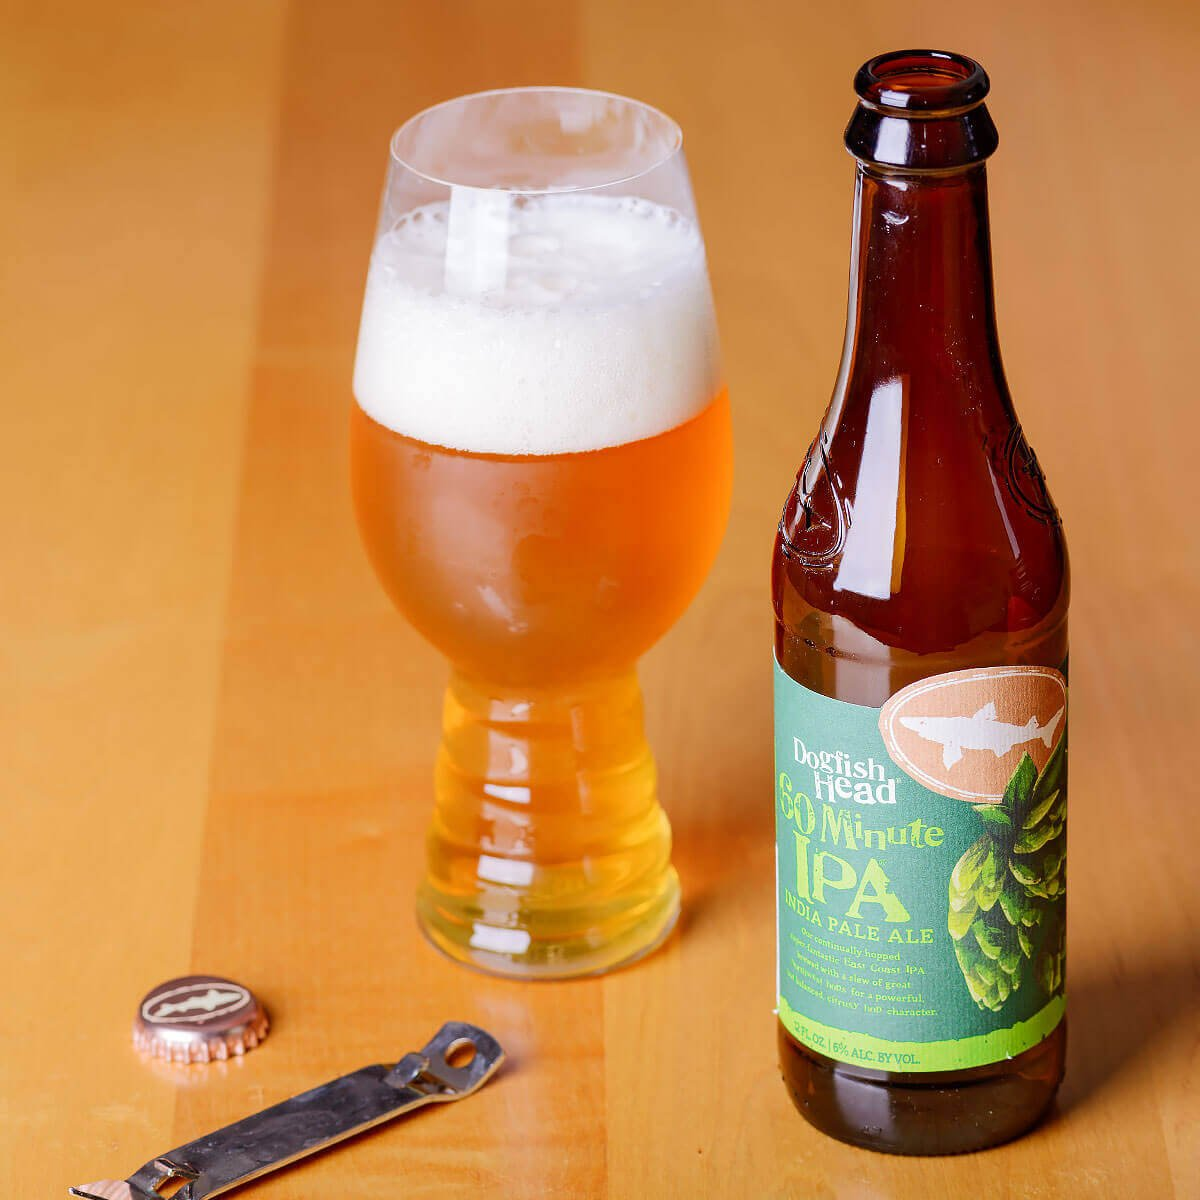 60 Minute IPA is an American IPA by Dogfish Head Craft Brewery that blends orange peel, white grapefruit, and pine with toasted bread and pineapple.